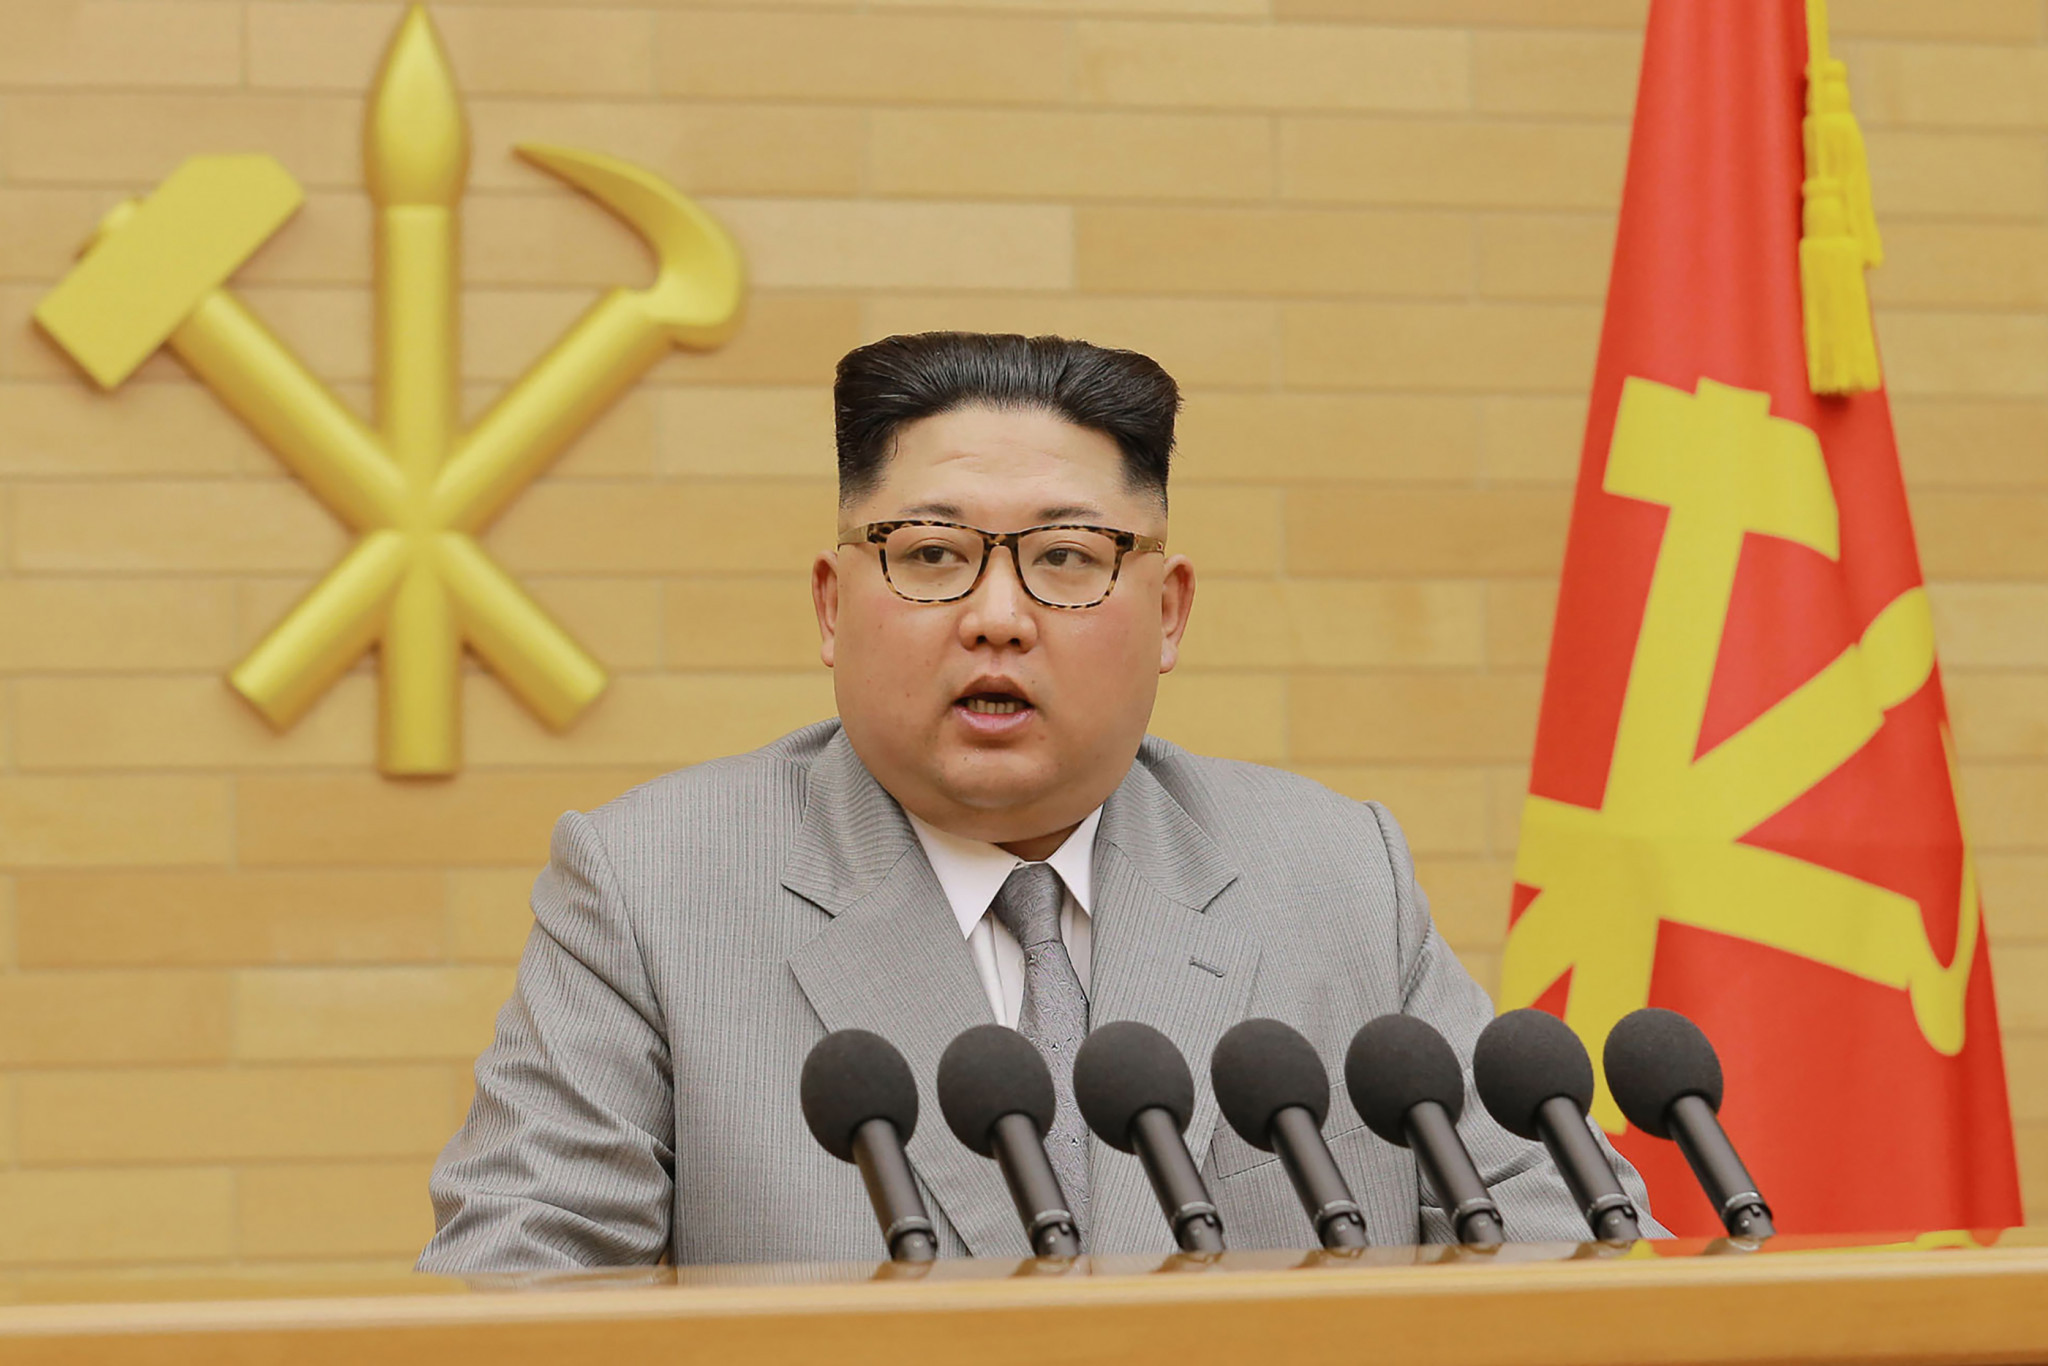 Kim Jong-un indicated plans to participate for the first time ©Getty Images